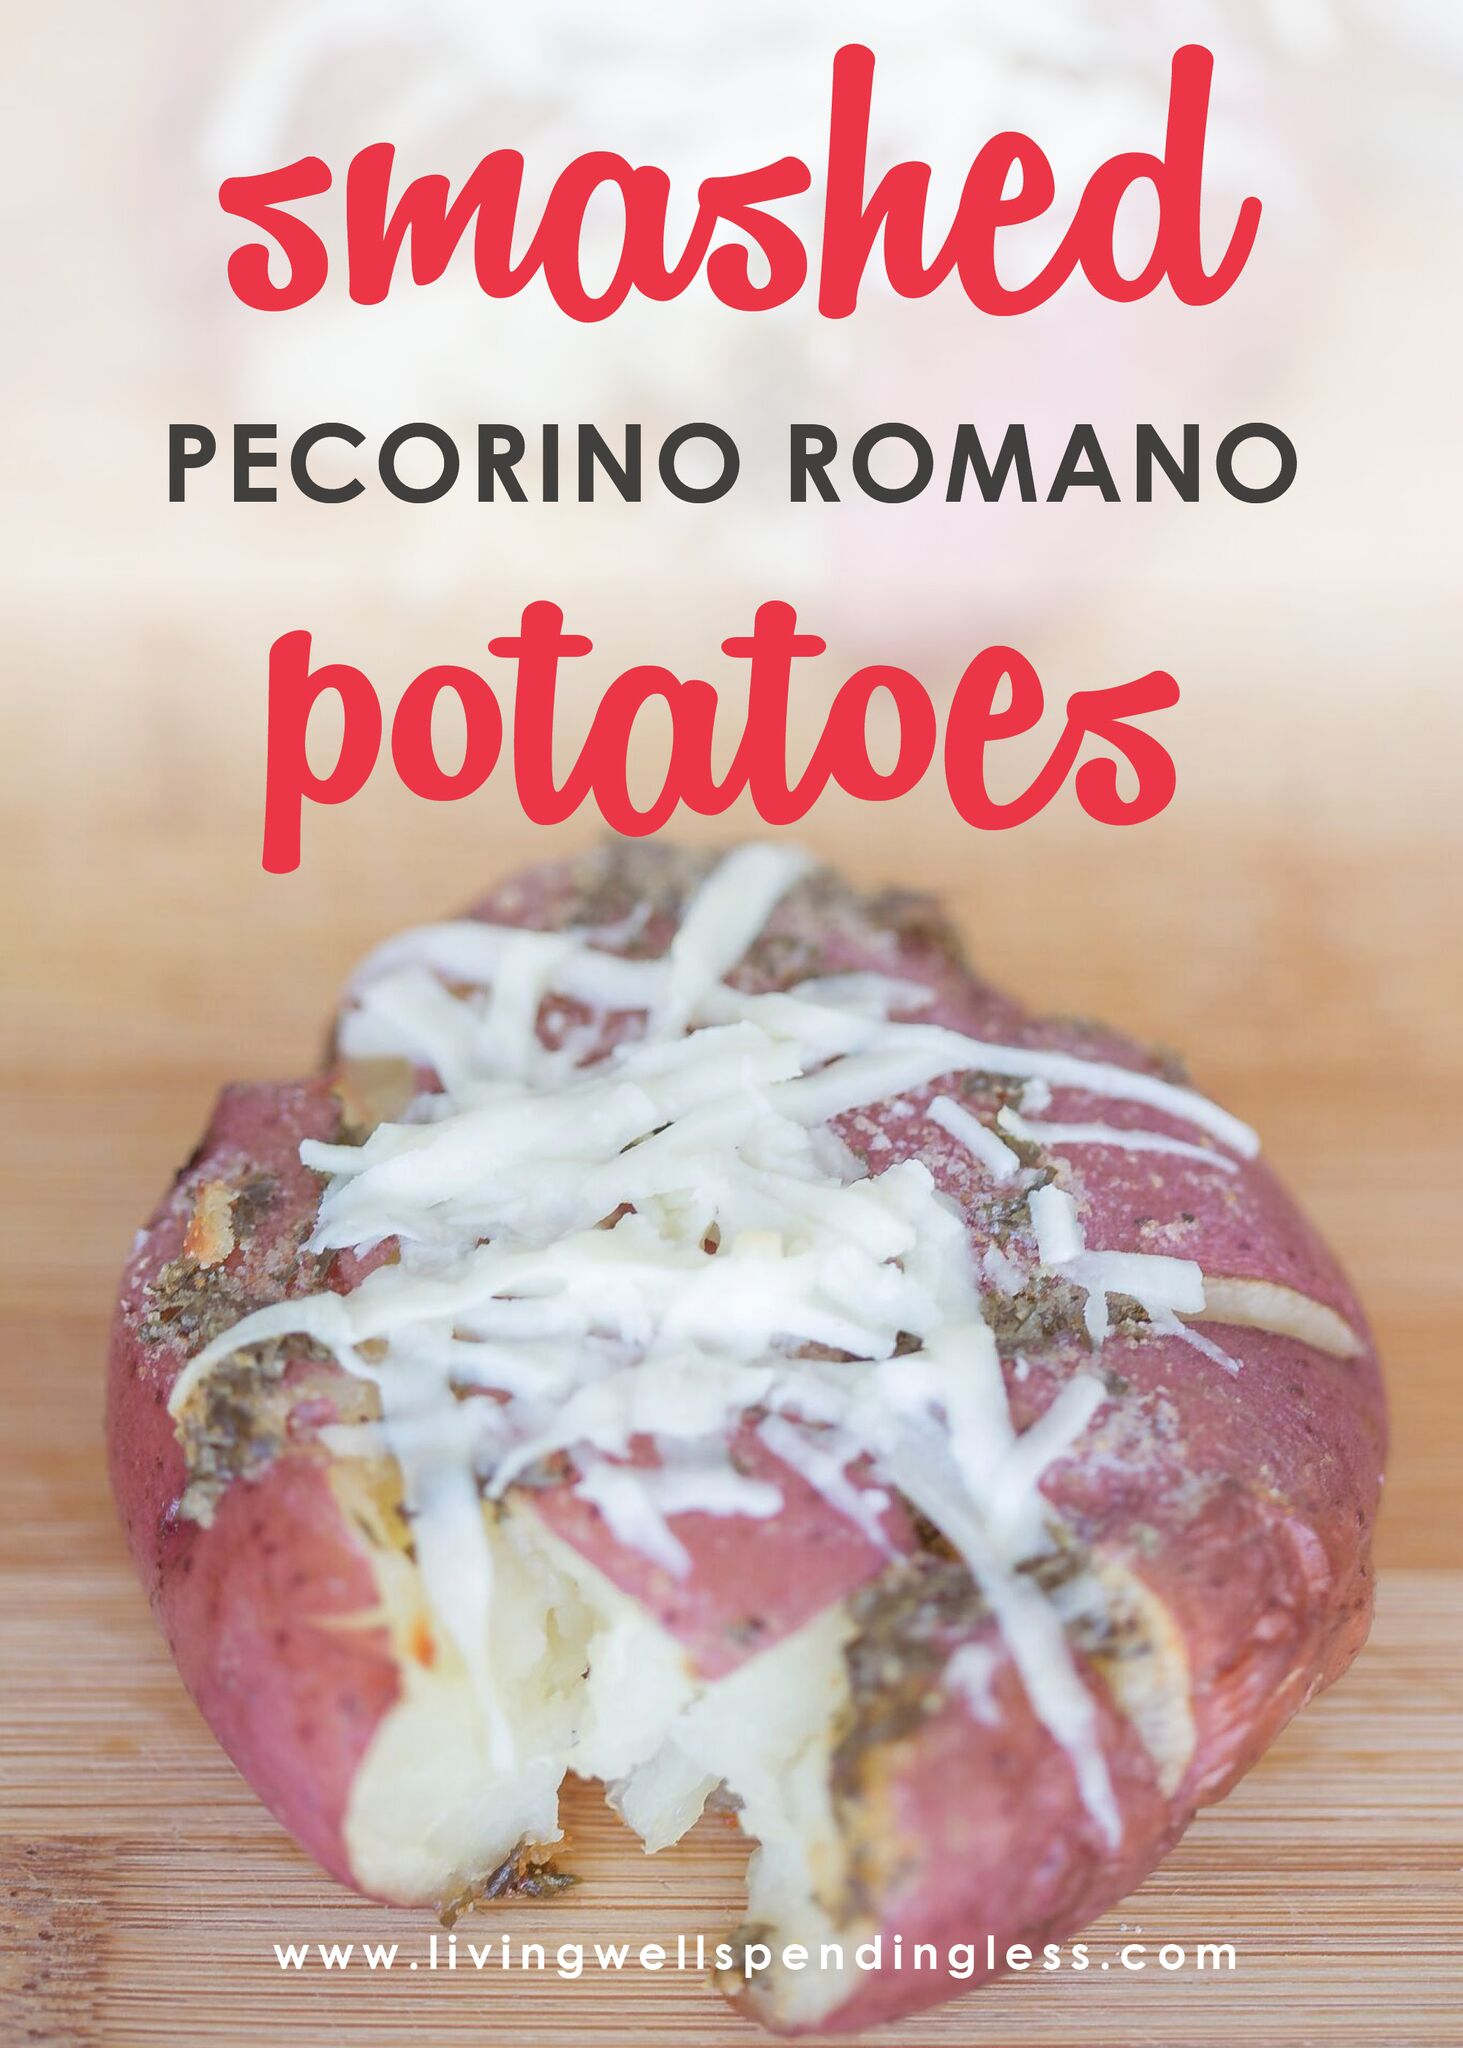 Your family will devour these savory Smashed Pecorino Romano Potatoes!